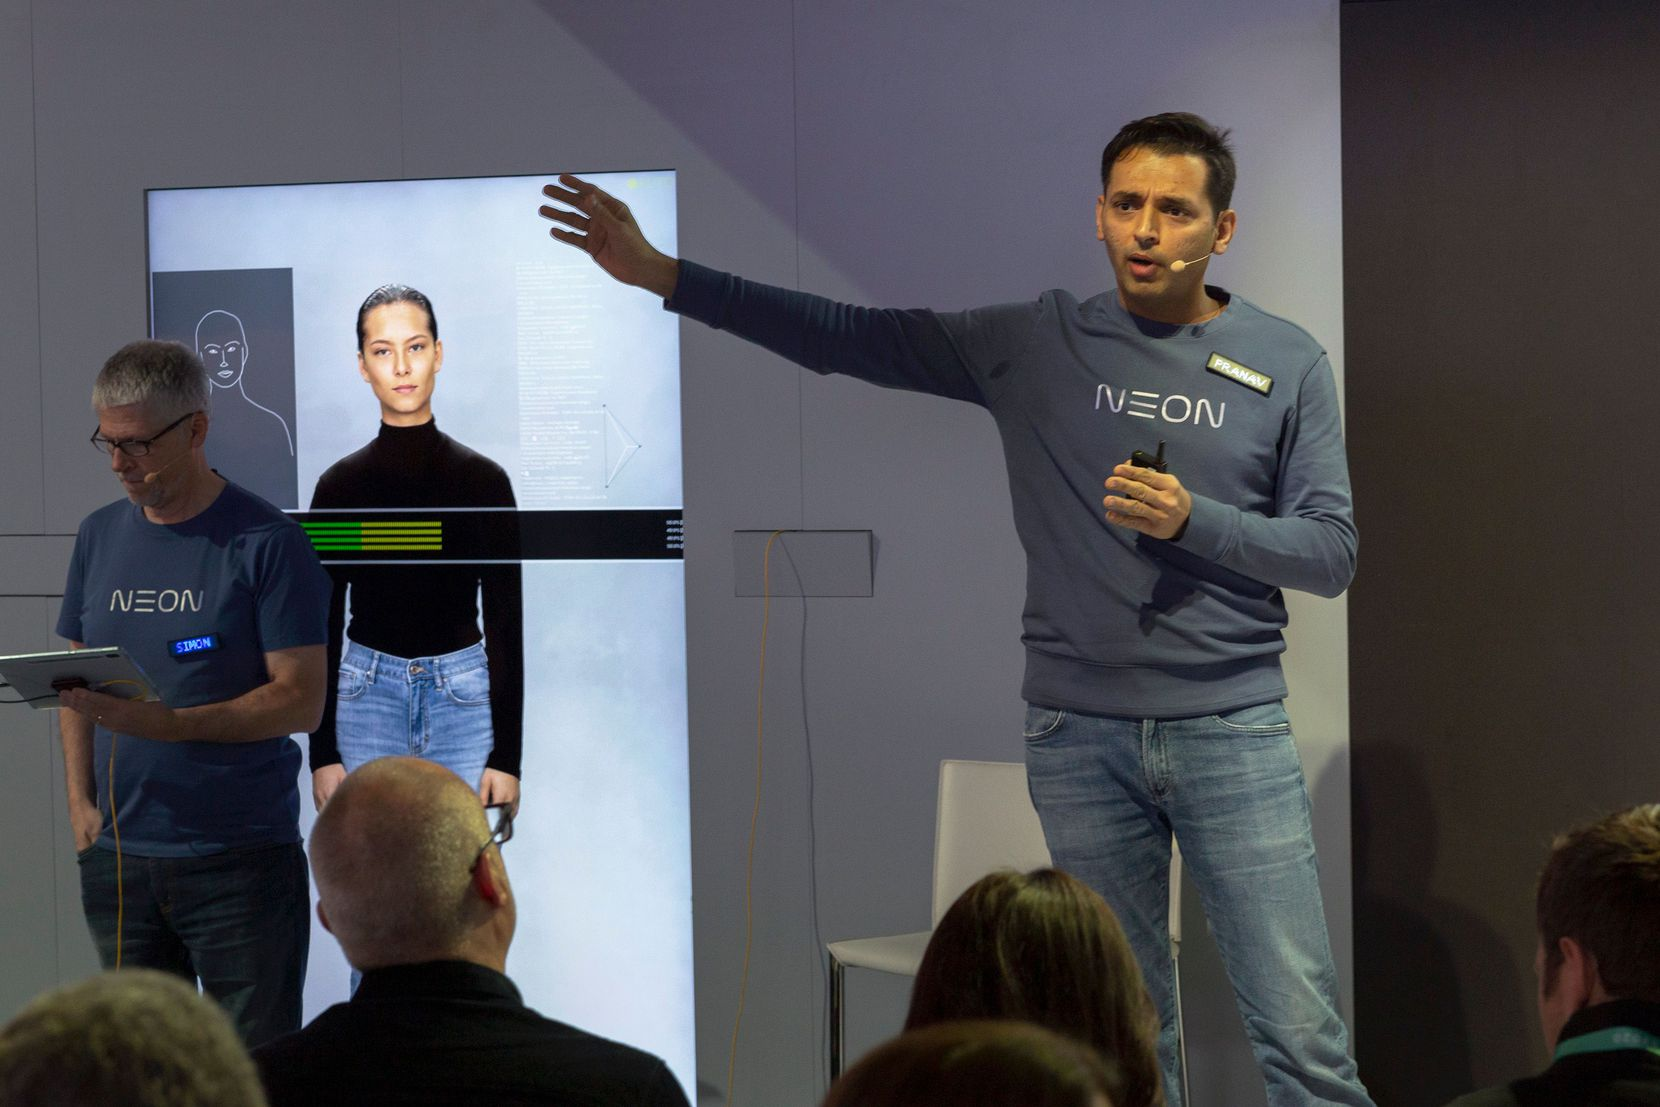 Neon CEO Pranav Mistry talks about the company's companion robot. (Photo by DAVID MCNEW/AFP via Getty Images)